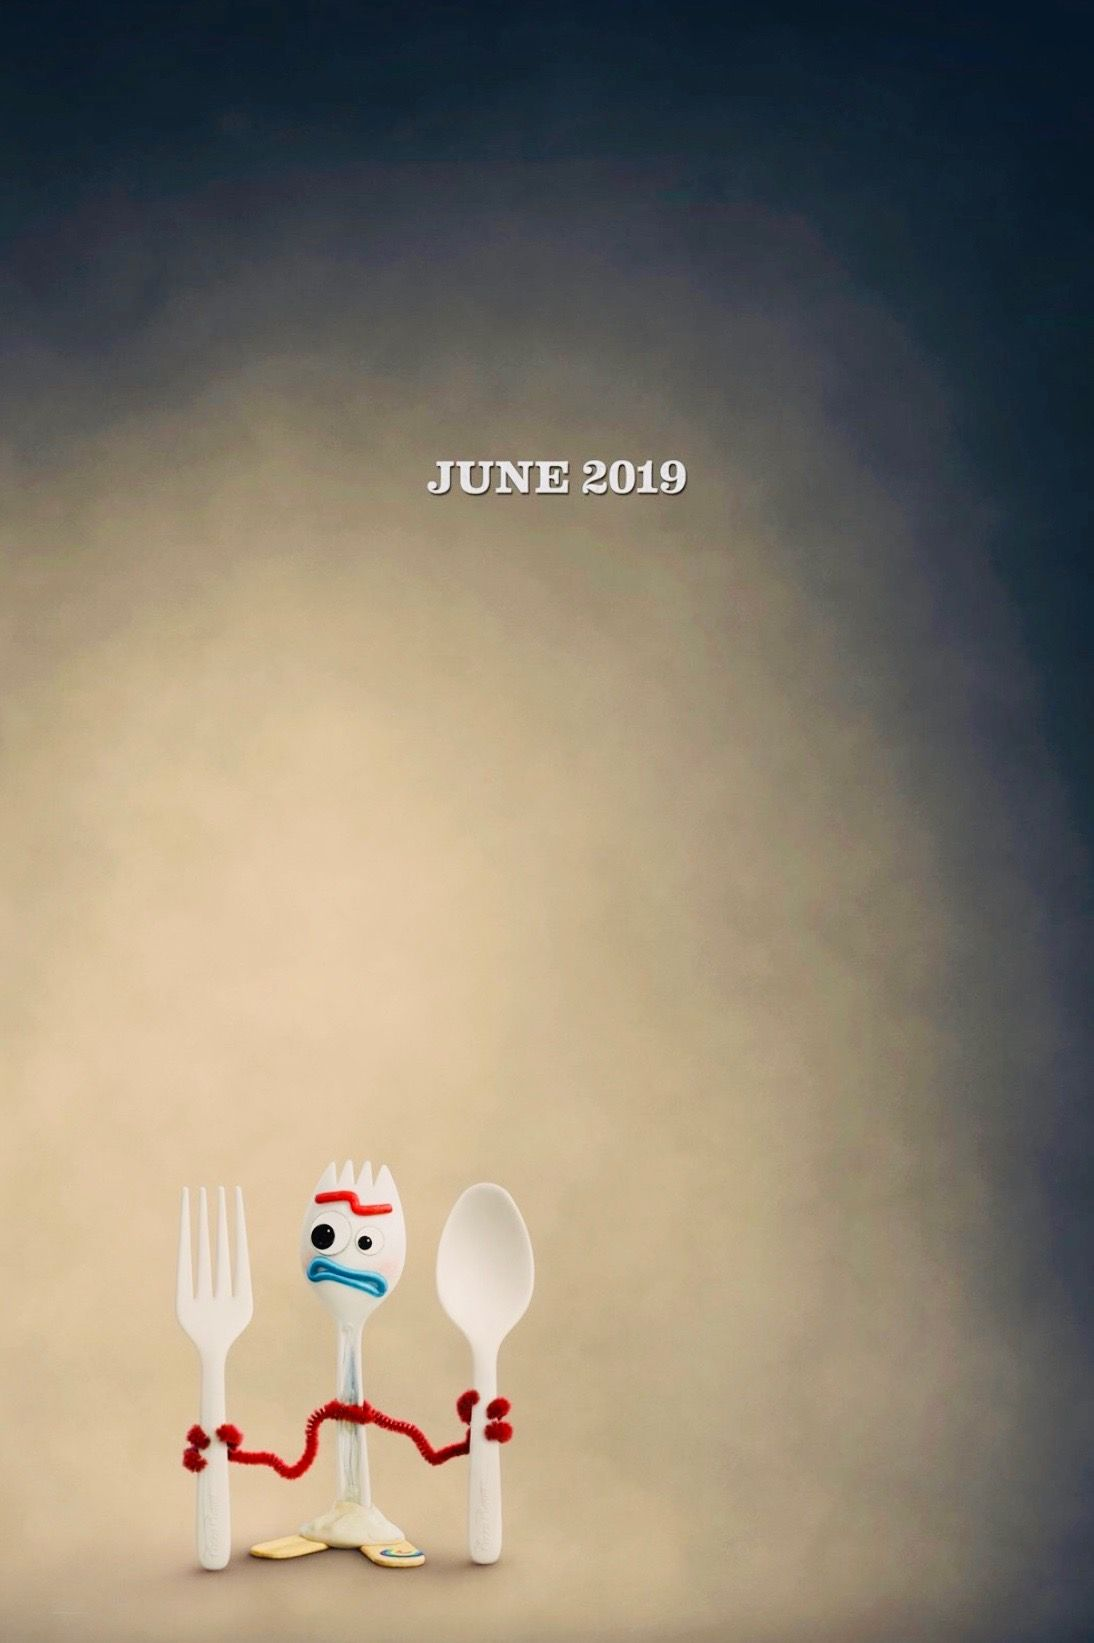 Toy Story 4 2019 Pop Culture Movies In 2019 Pixar Pixar